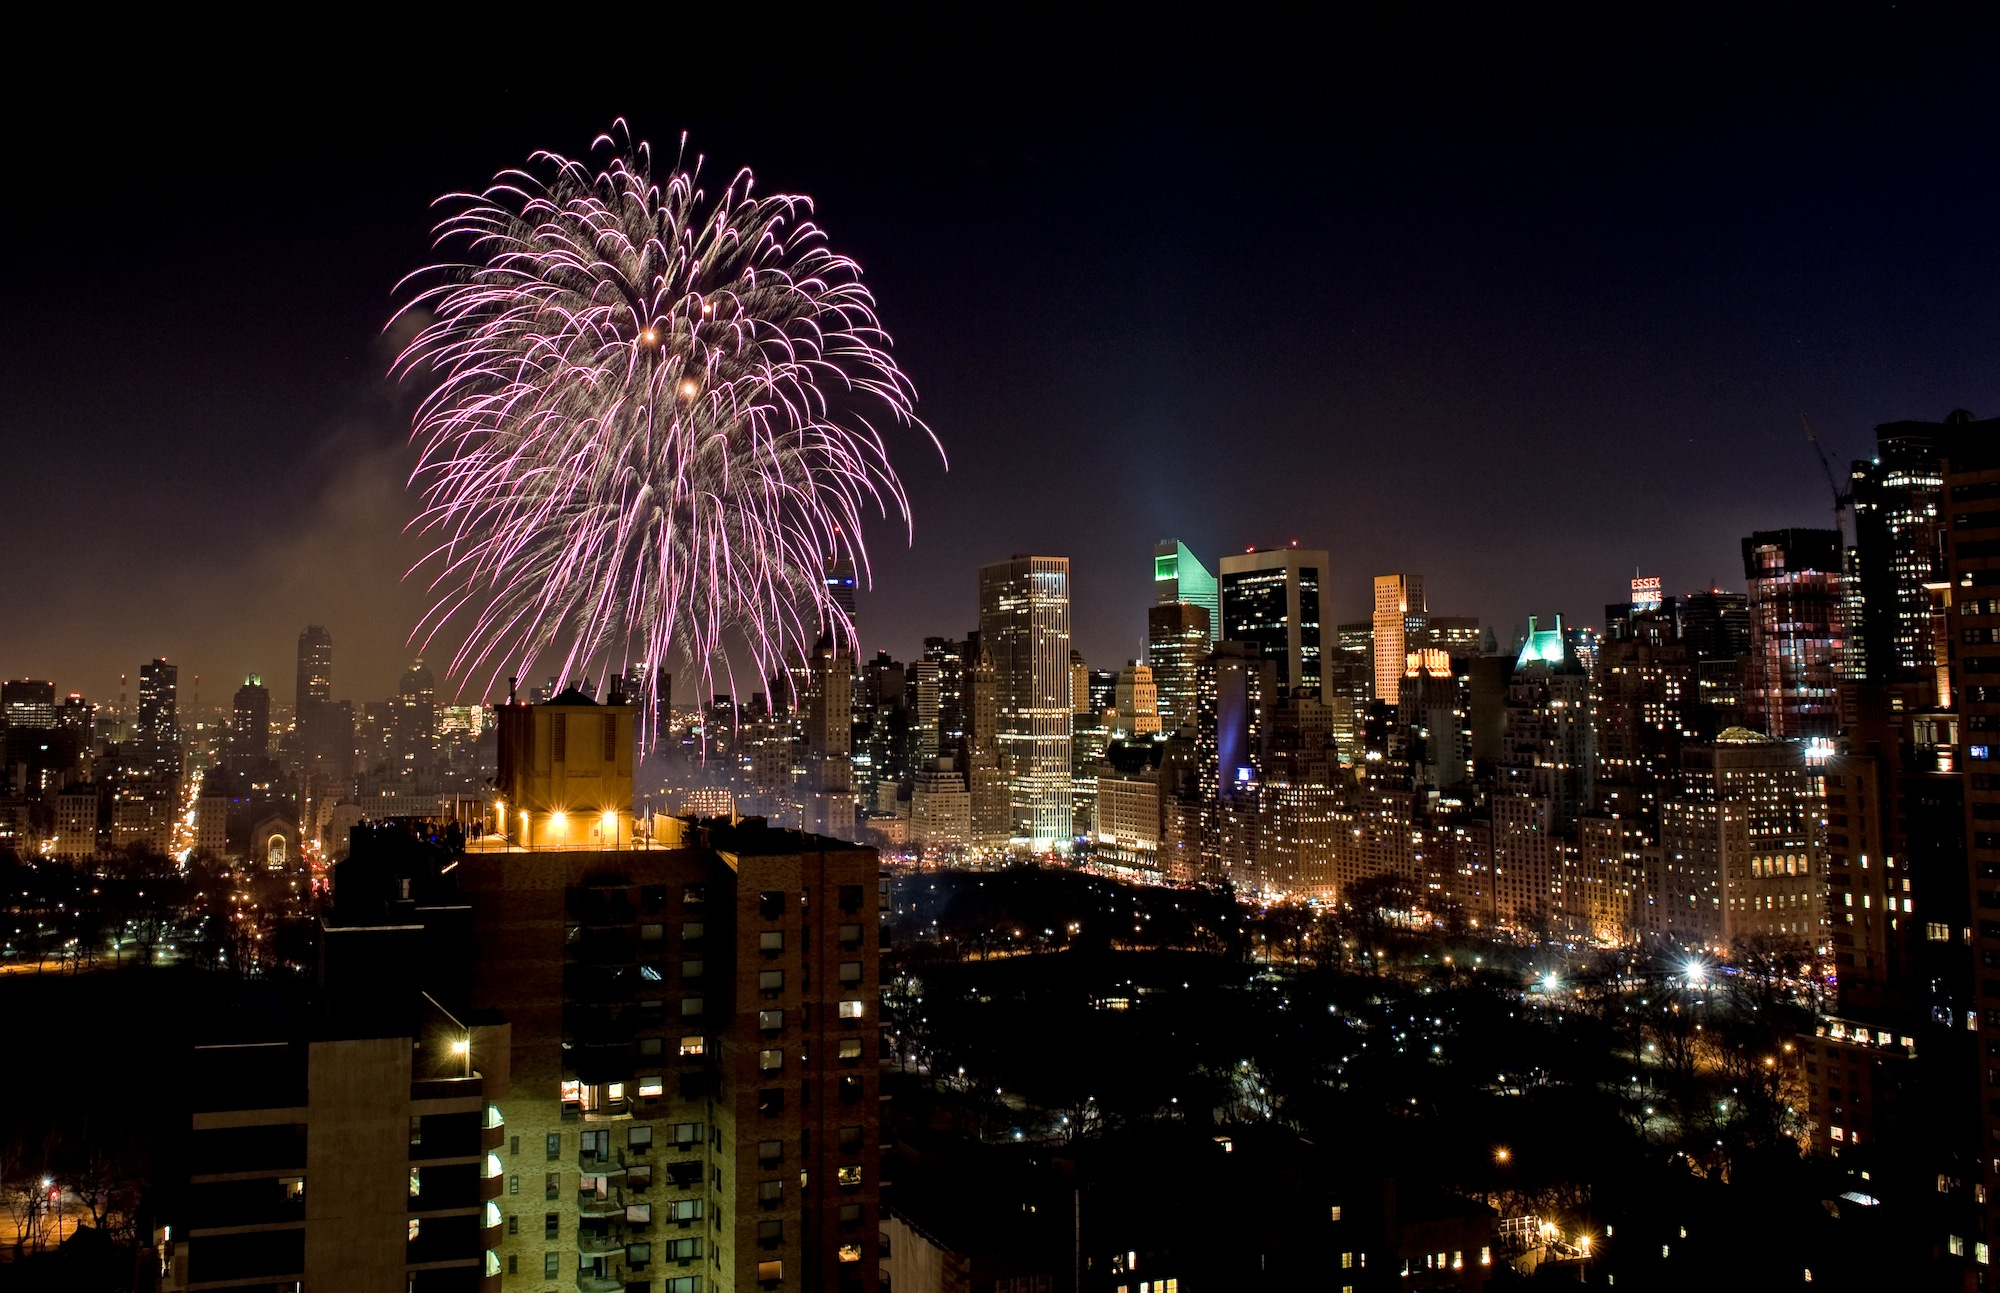 Photography - Fireworks  - Night - Building - Skyscraper - New York Wallpaper